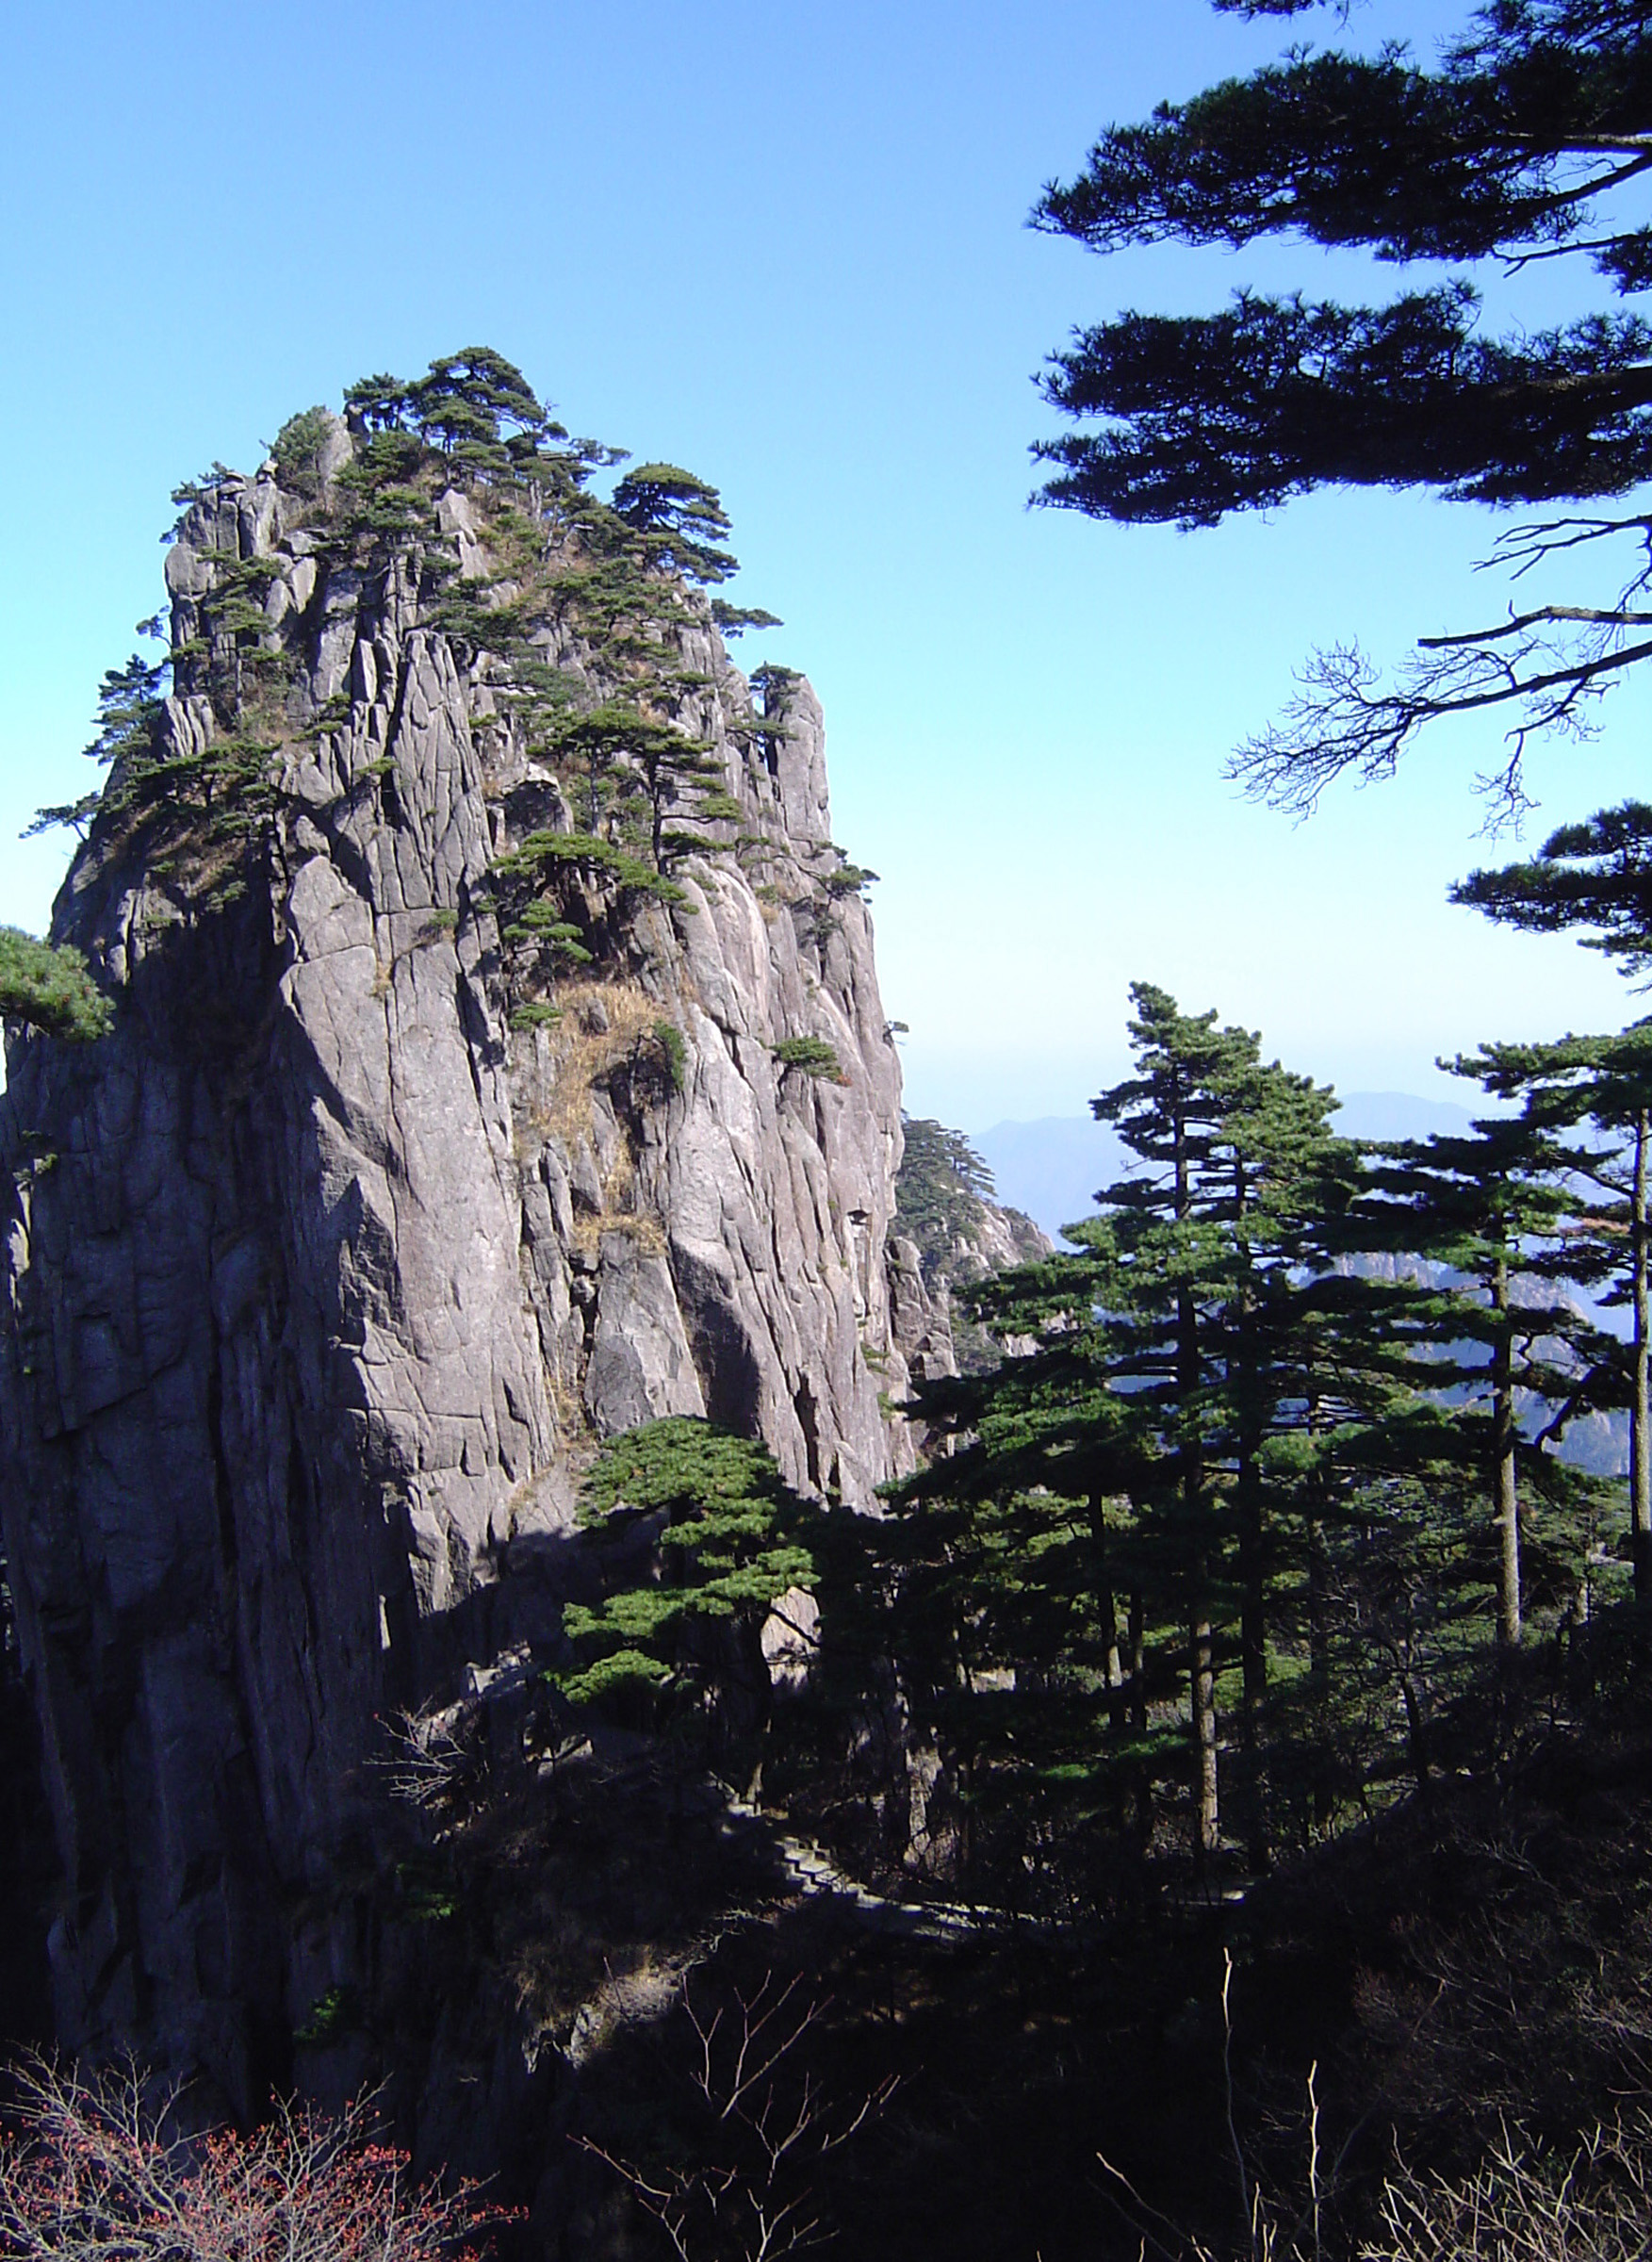 Green Fir Pine Trees Growing at Famous Yellow Mountains in China with Light Blue Sky Background.